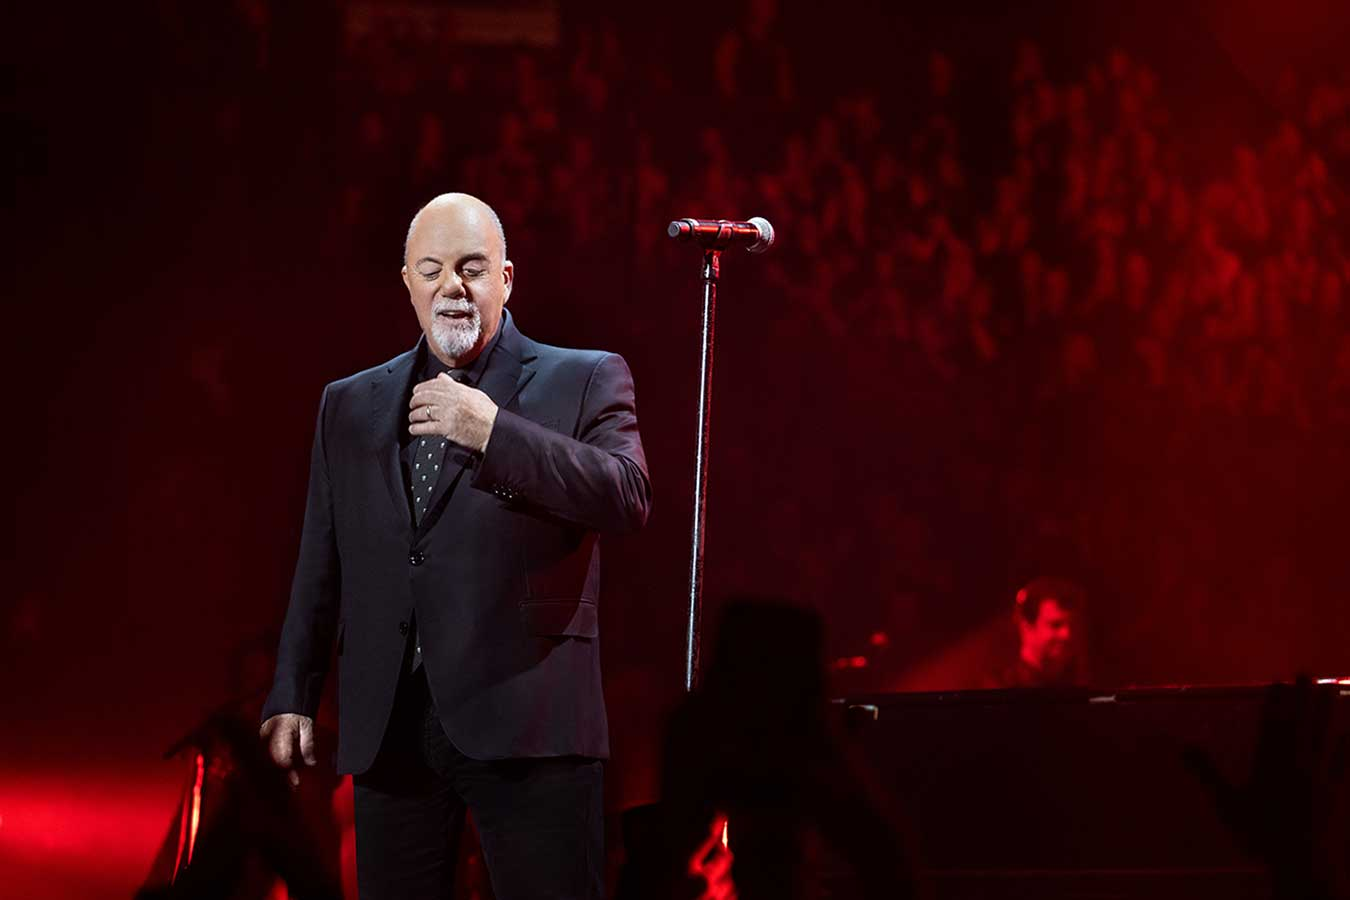 Congratulations to Billy Joel & Madison Square Garden on Their 31st Annual Pollstar Awards For Best Residency